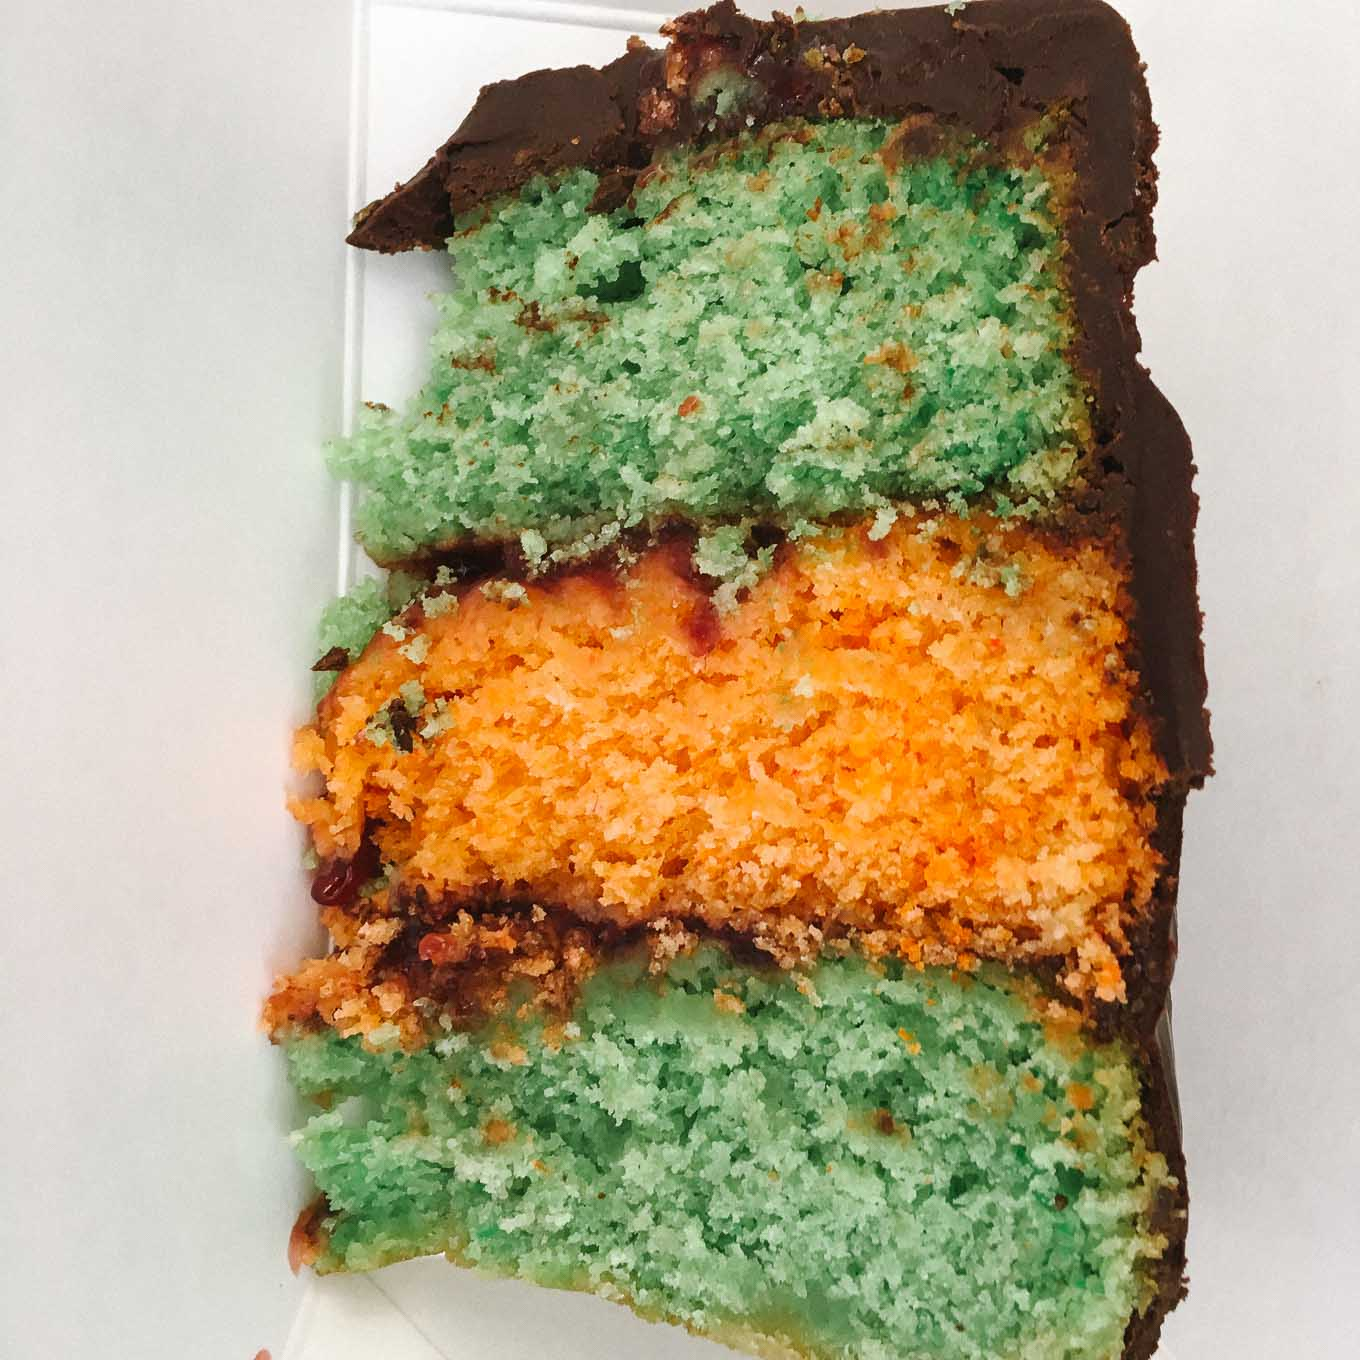 Tricolor Cake | the Tastiest Book